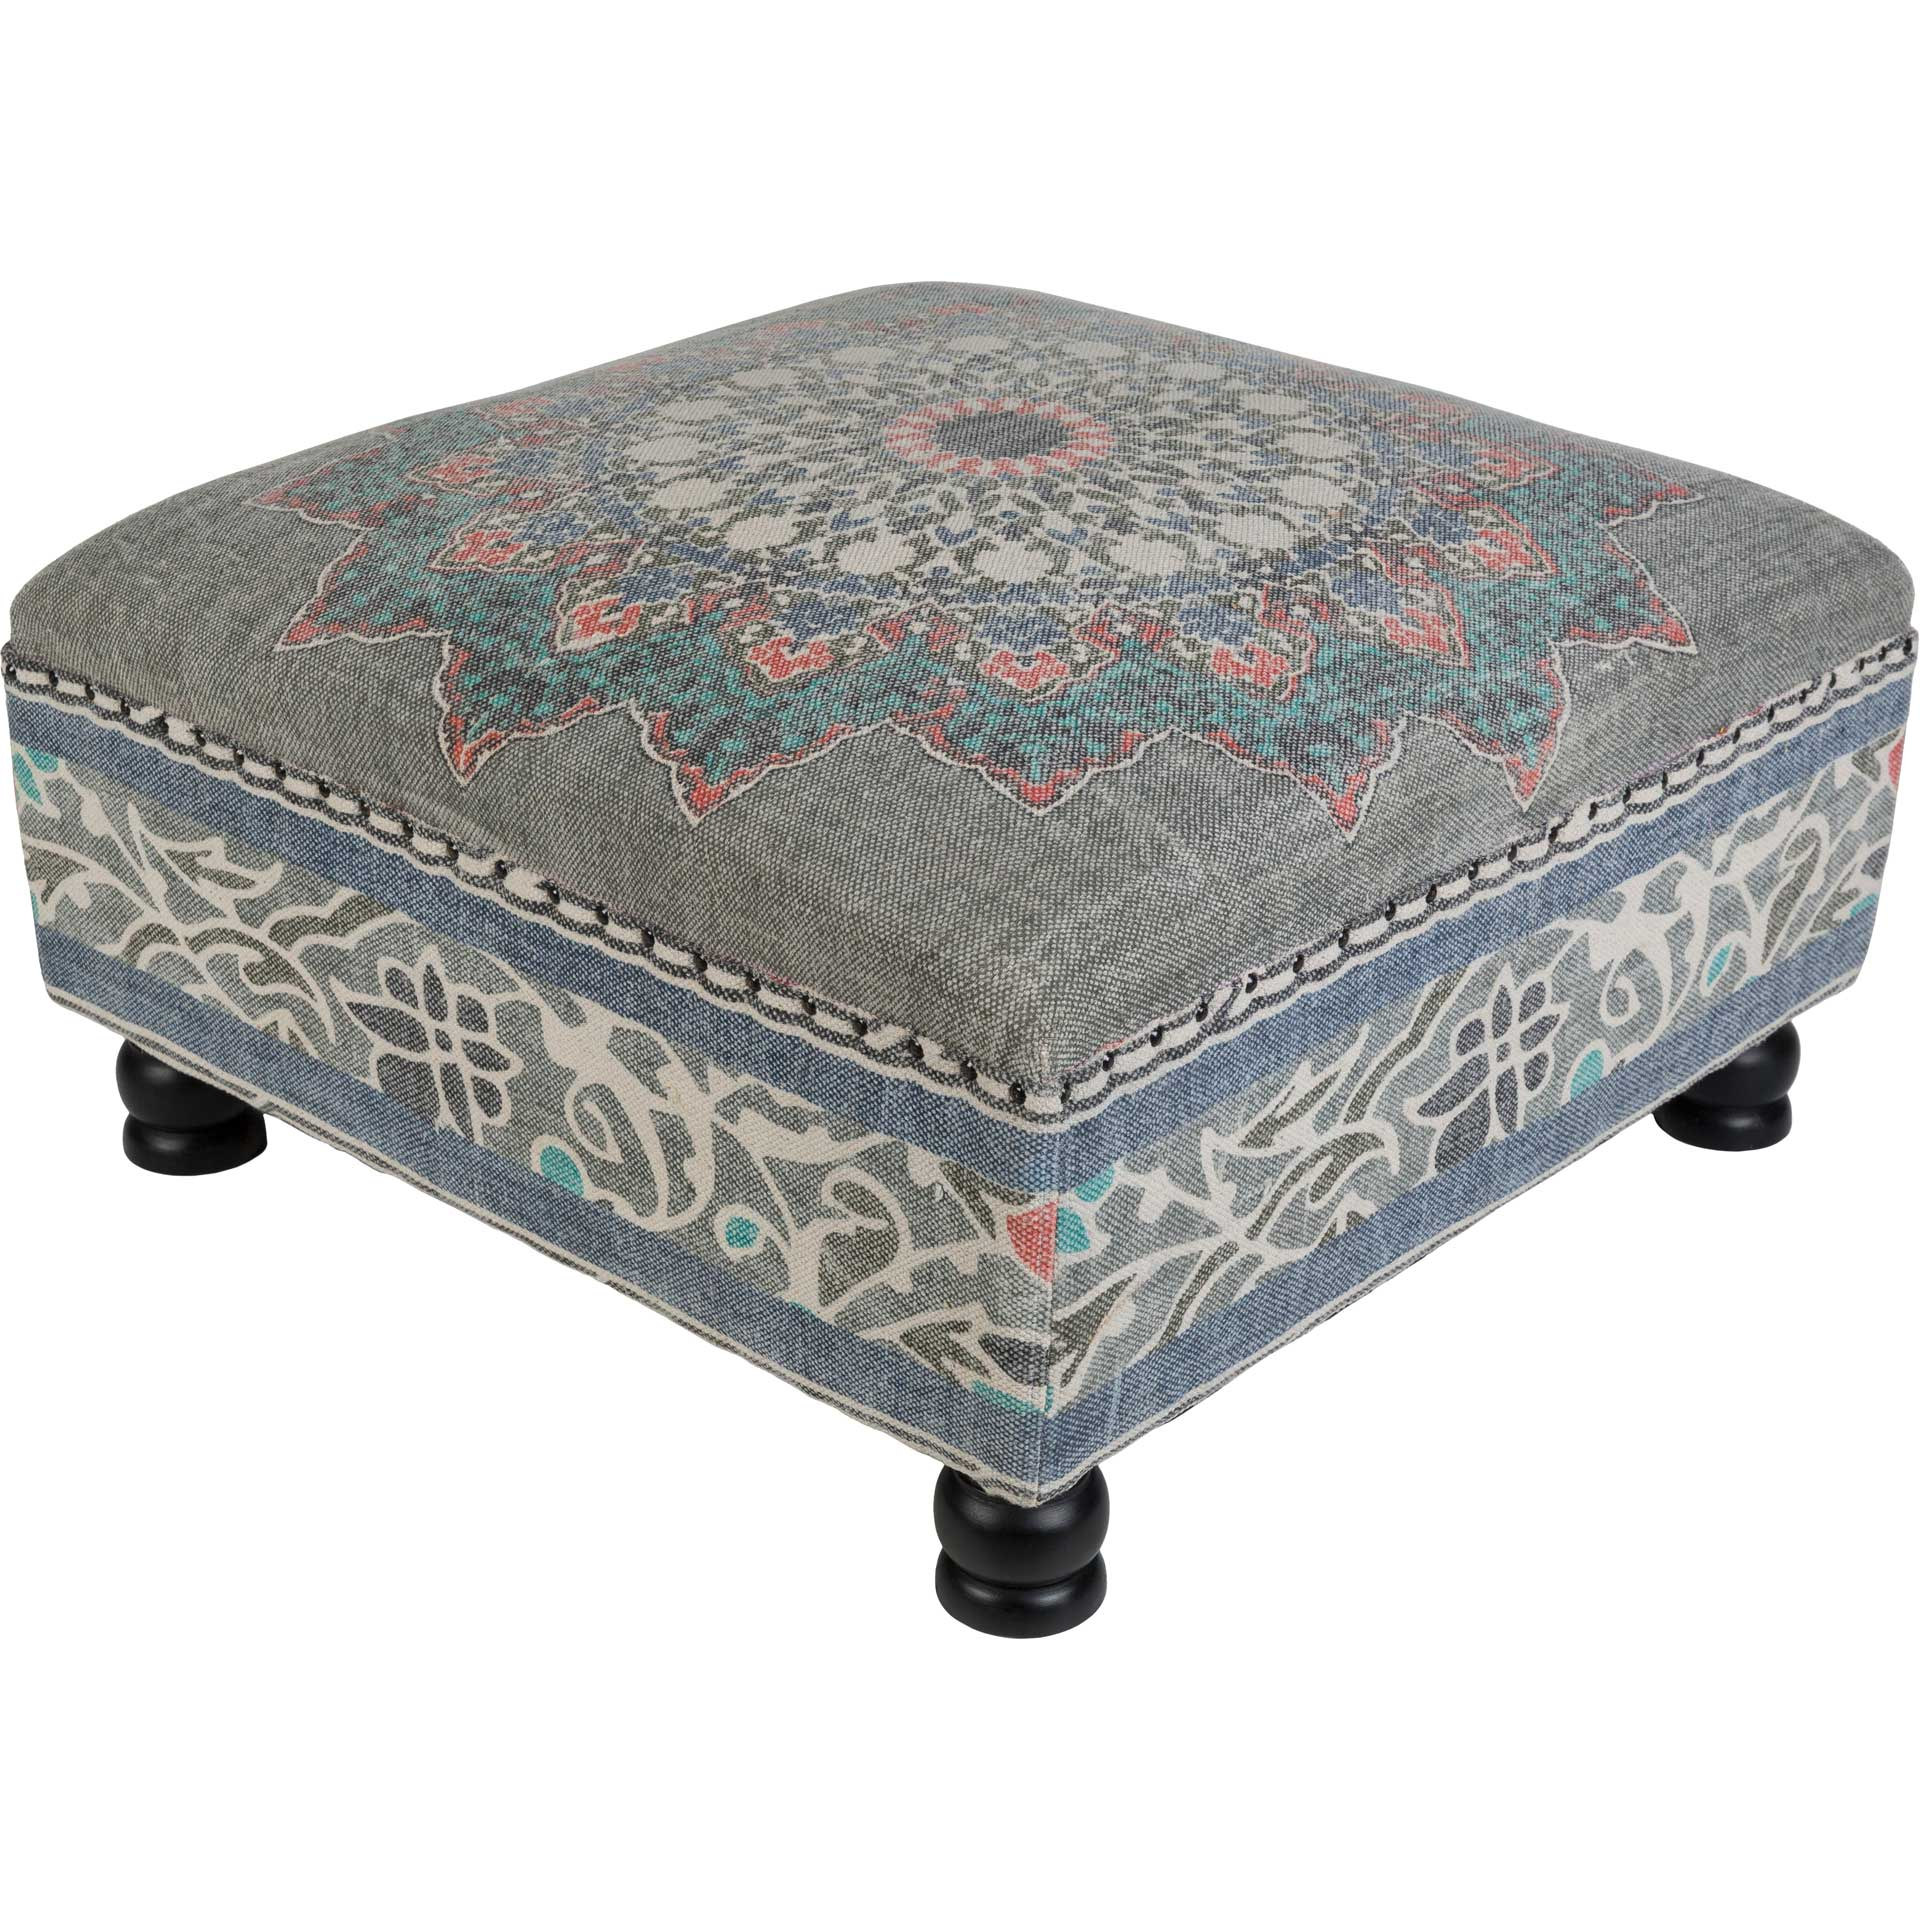 Sumatra Ottoman Medium Gray/Navy/Bright Red